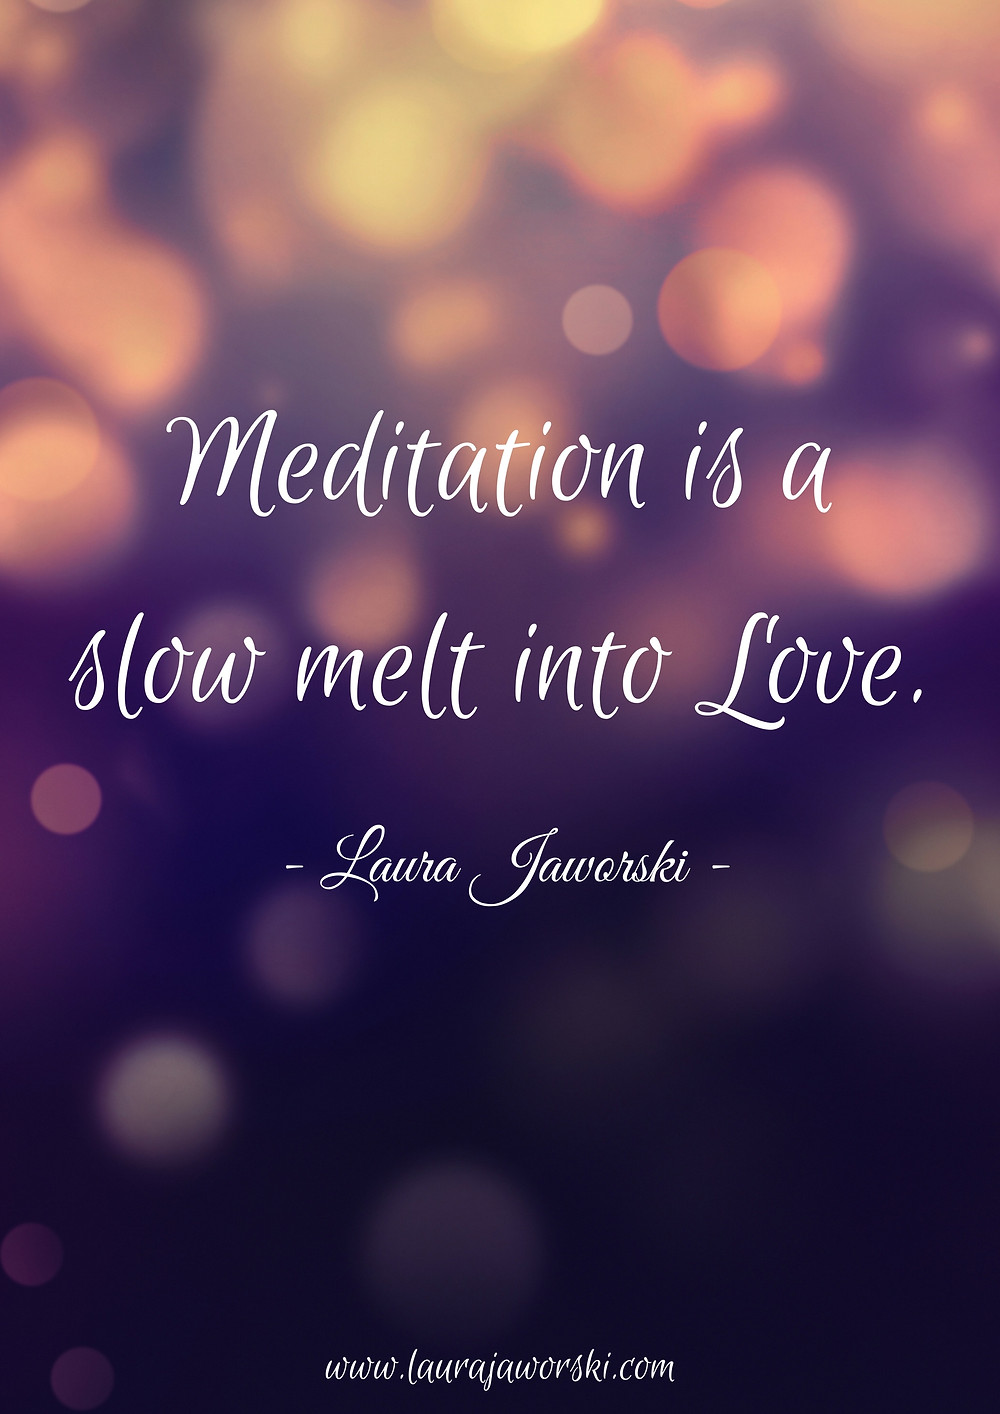 """Meditation is a slow melt into Love."" ~ Laura Jaworski"